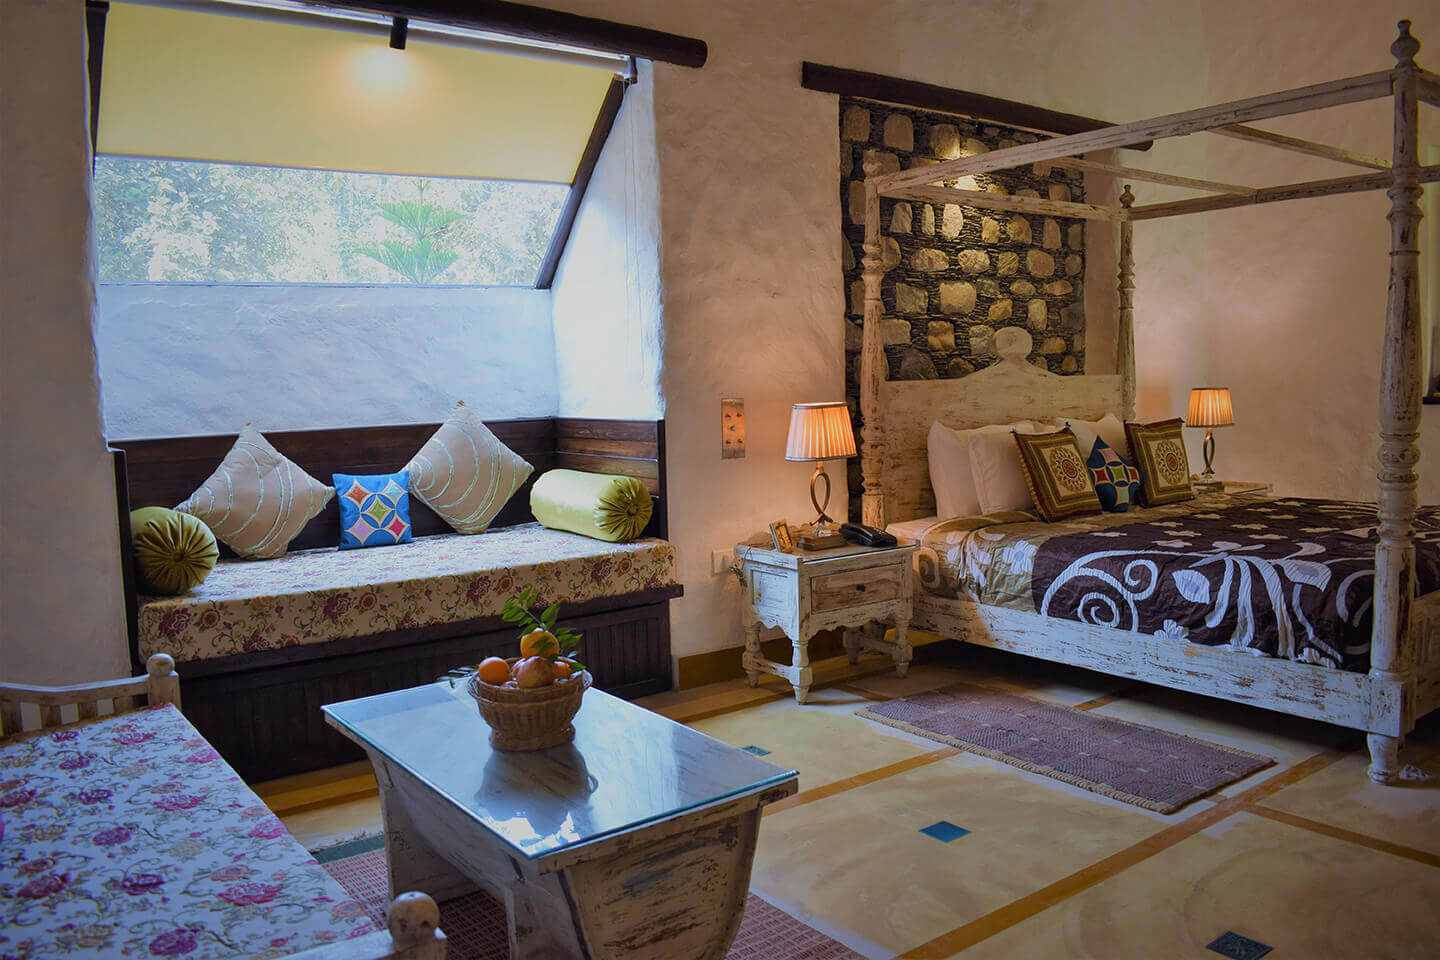 Corbett luxury resorts, luxury safari resort in jim corbett, Luxury resorts in corbett, premium luxury resort in corbett, Top rated resort in jim corbett, wildlife luxury resort in nainital, Top resorts in jim Corbett